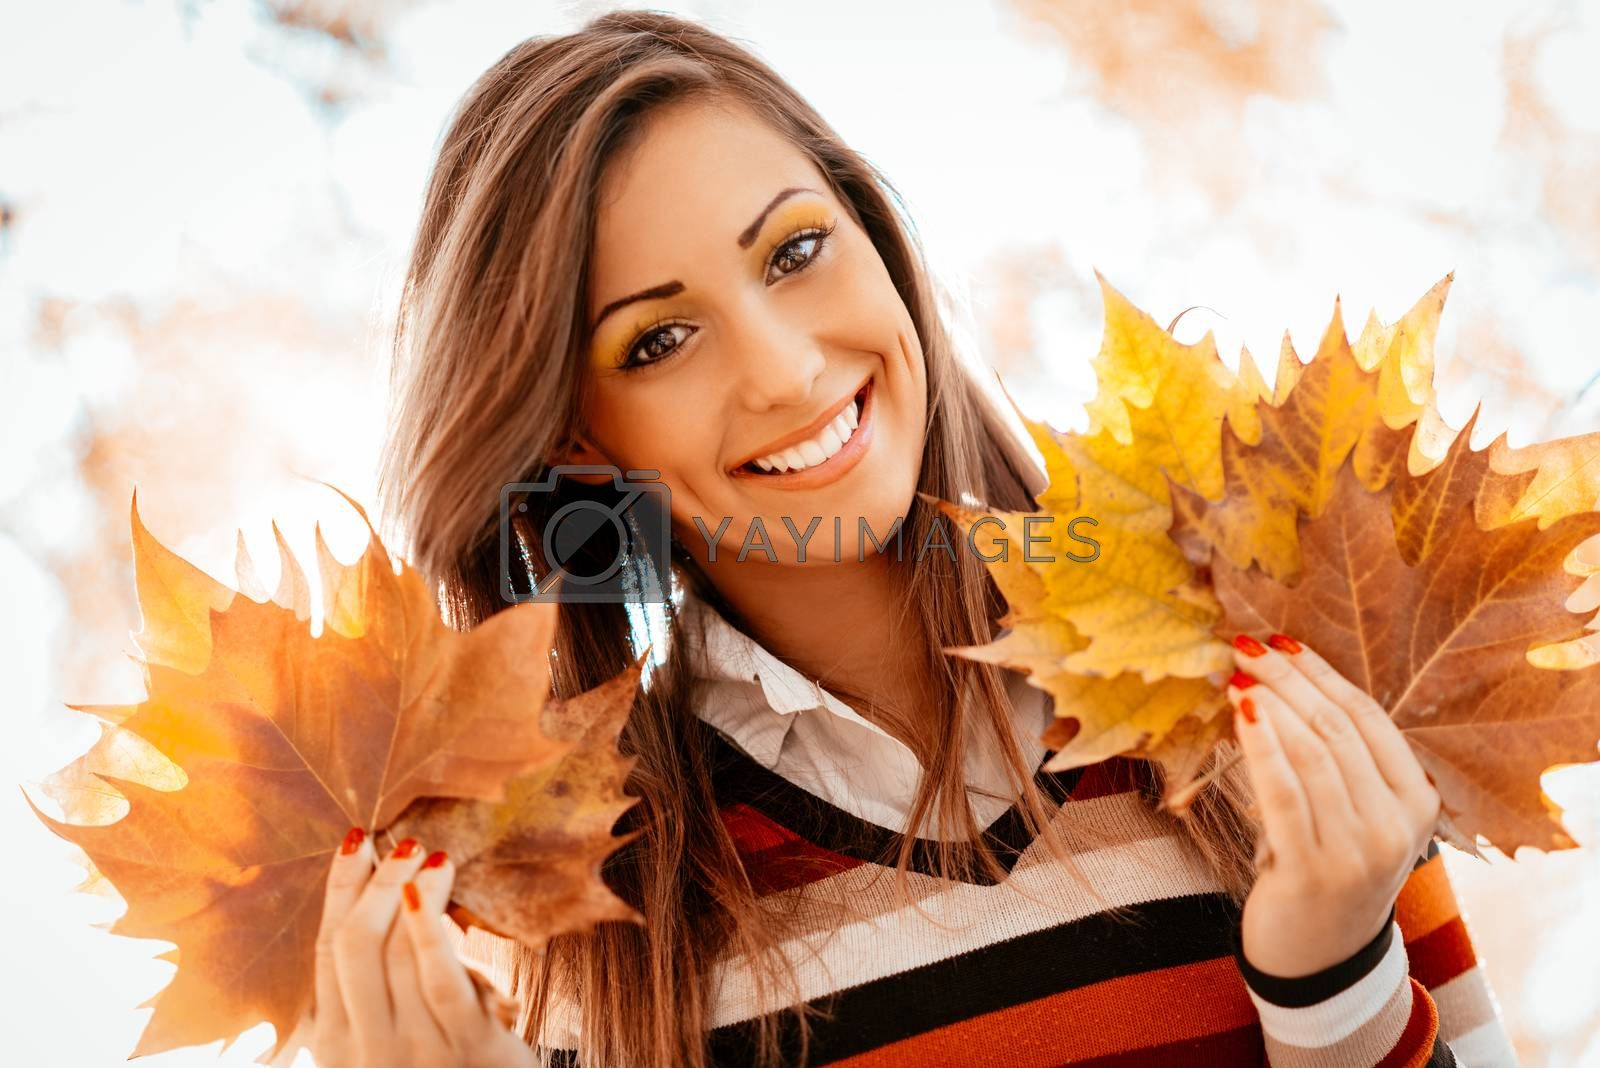 Portrait of a cute young woman enjoying in sunny forest in autumn colors. She is holding golden yellow leaves. Looking at camera.